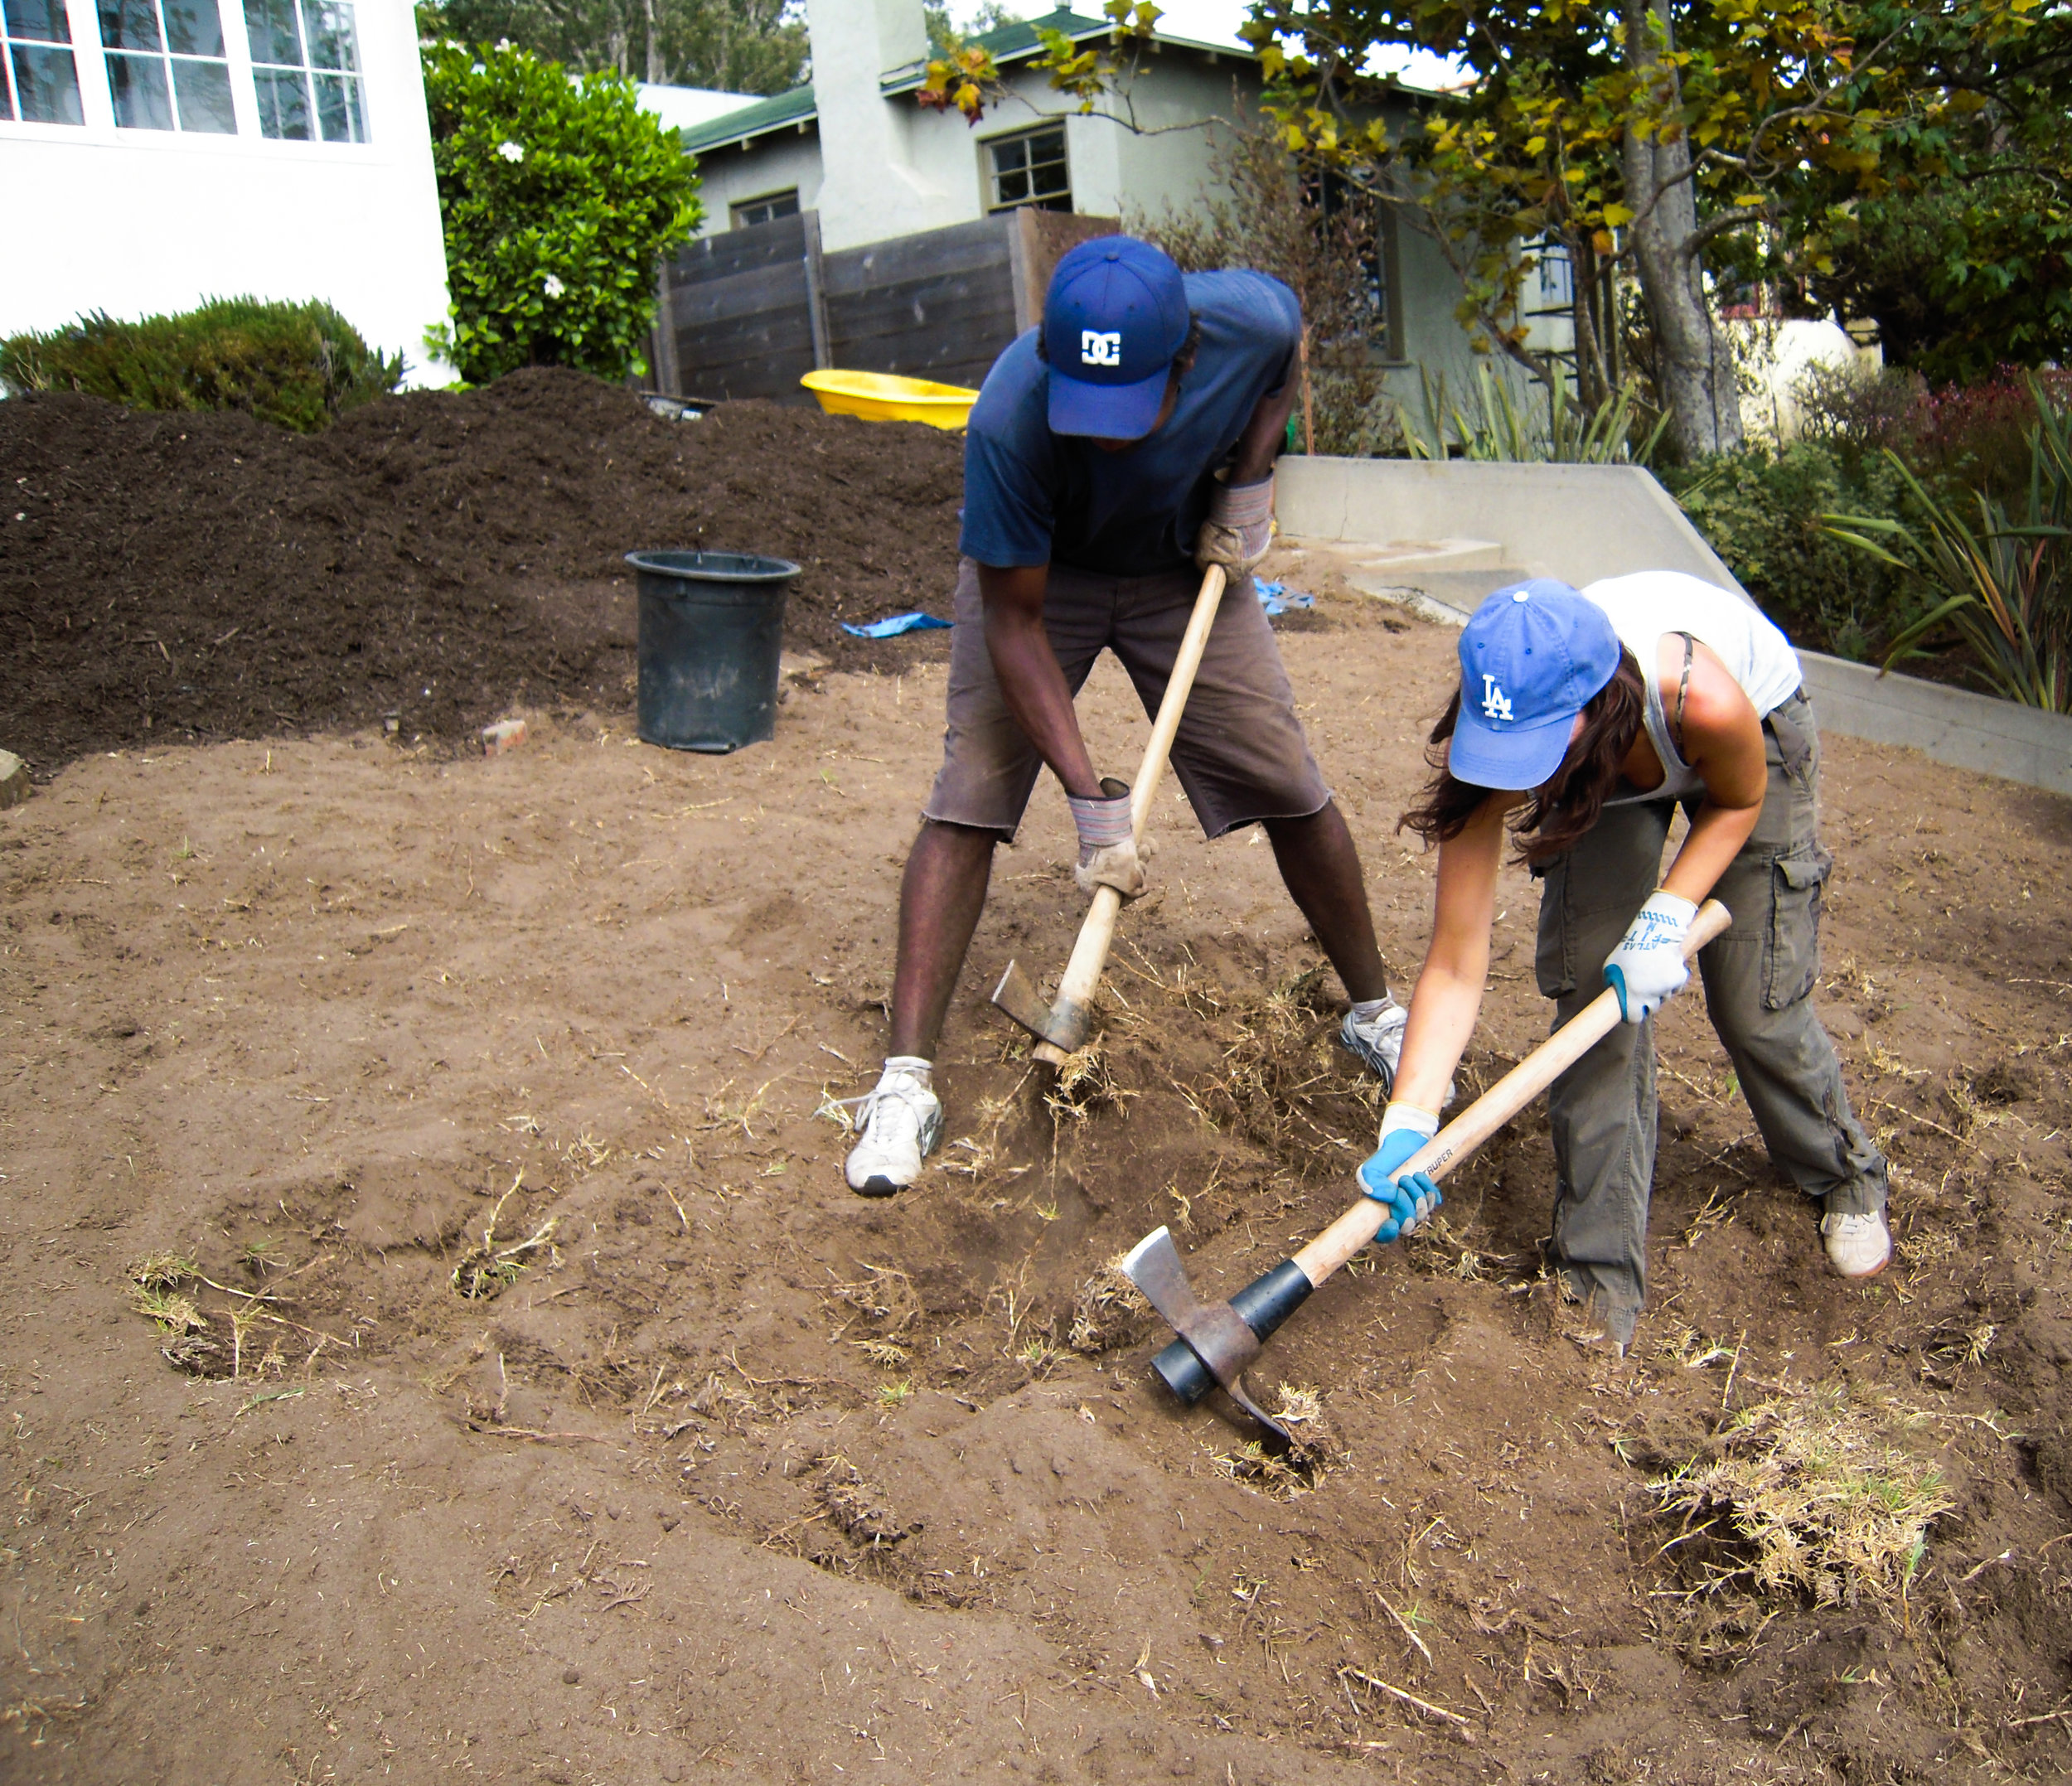 Attend a Hands On Workshop - When you attend a DWP-hosted Hands On Workshop, you will learn how to:- Remove turf and install sustainable landscaping- Incorporate low water use California Friendly and native plants- Capture rain water- Save water and moneySign up for one of the workshops below!Register below or register by phone at 1-800-544-4498 extension 5, Monday through Friday 7:00 a.m. to 4:00 p.m.